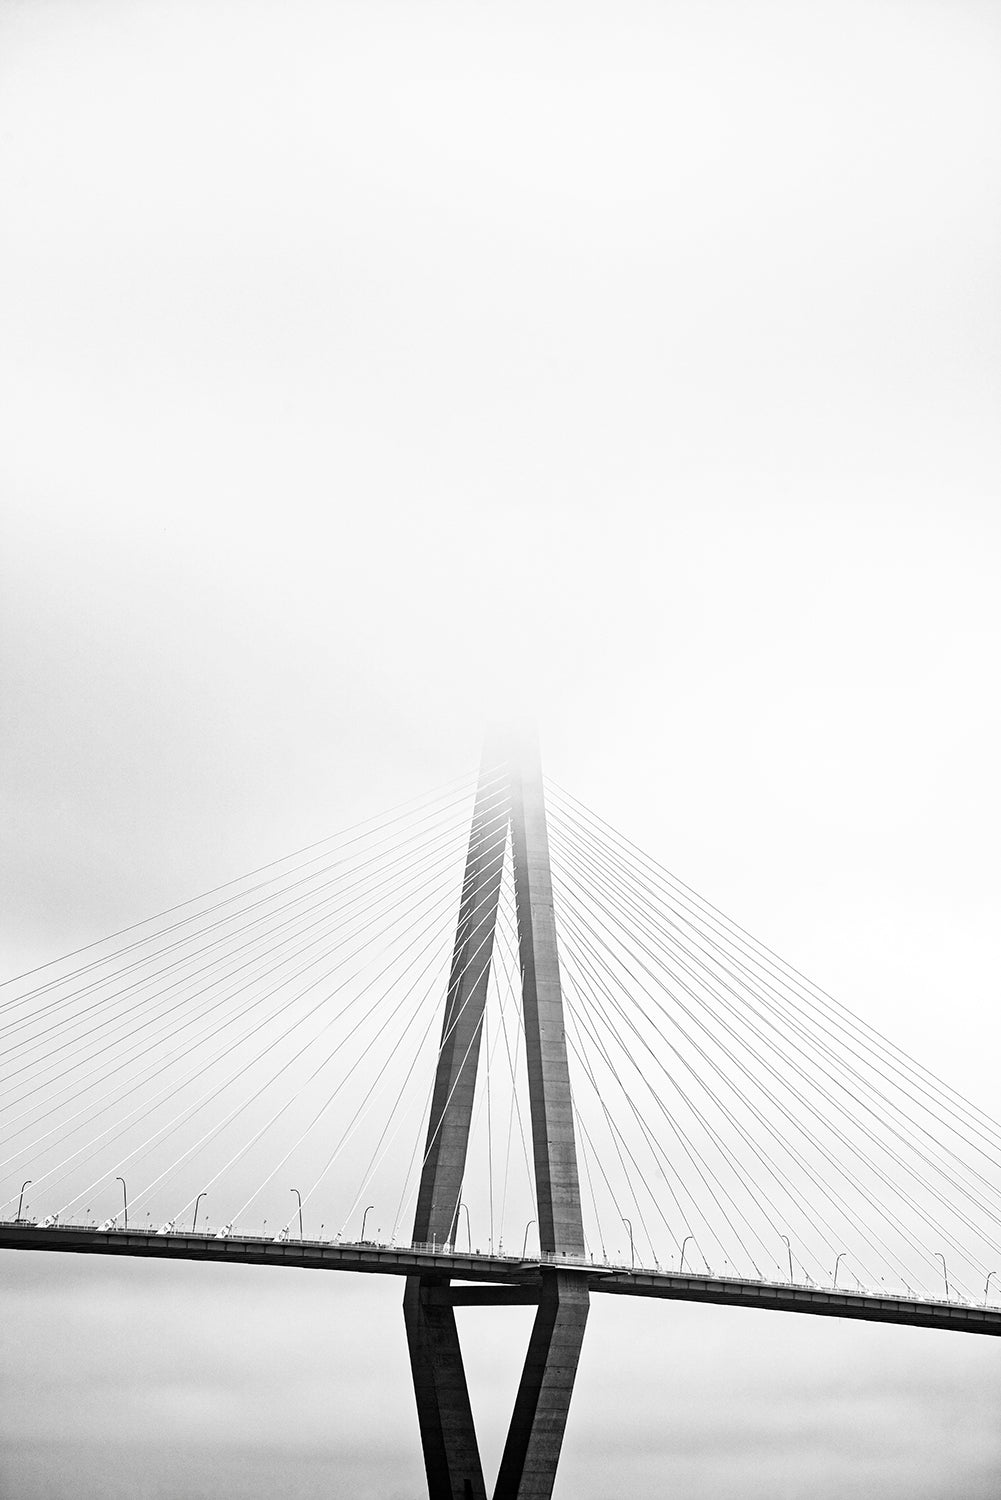 Charleston's Ravenel Bridge in Fog - Black and White Photograph by Keith Dotson. Buy a print here.